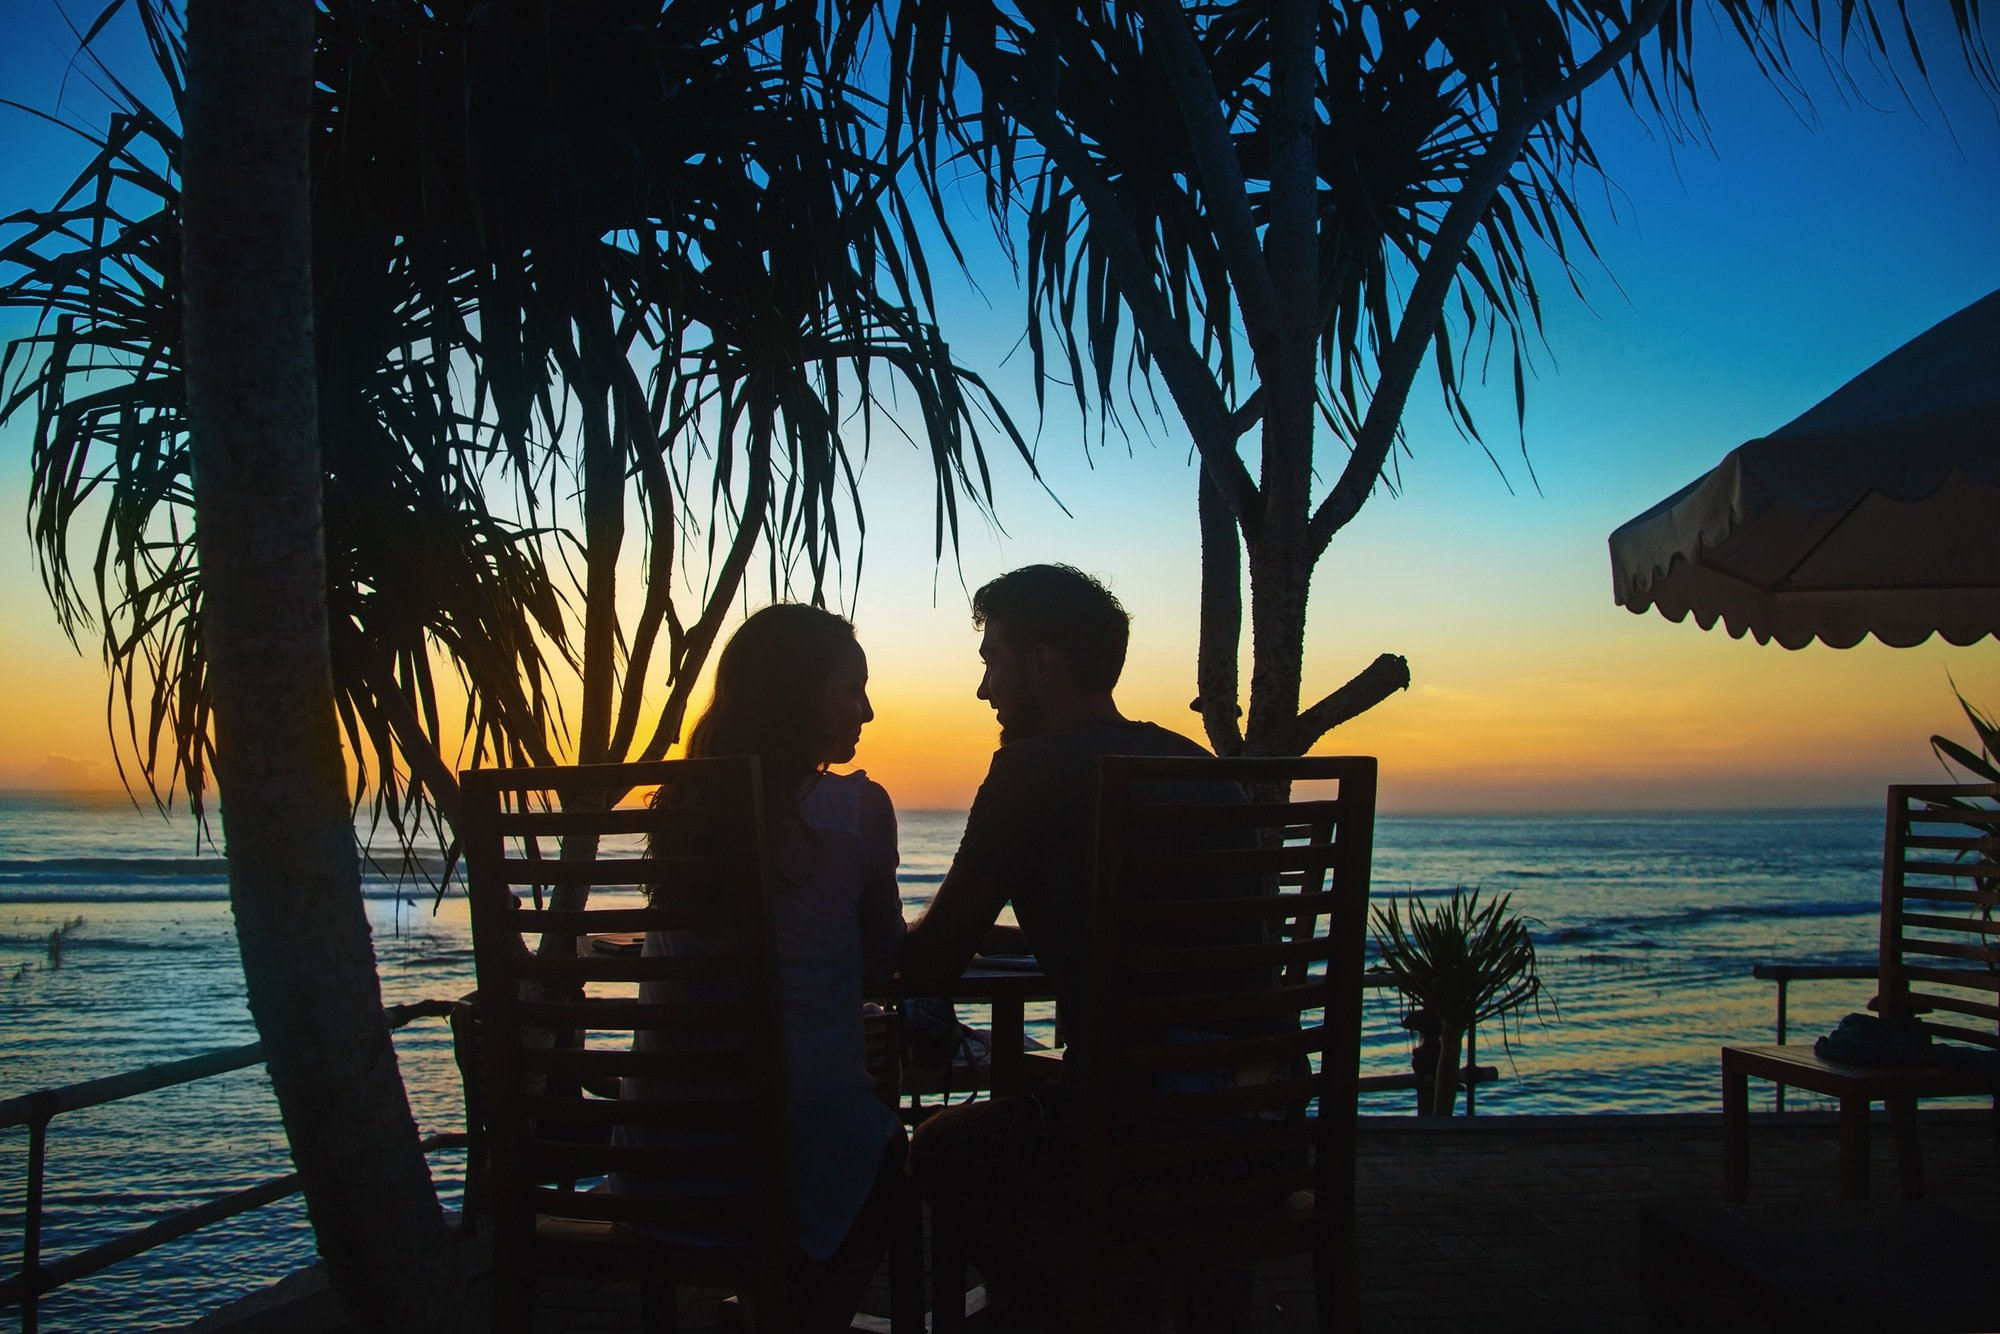 Vacation date night in tropical destination